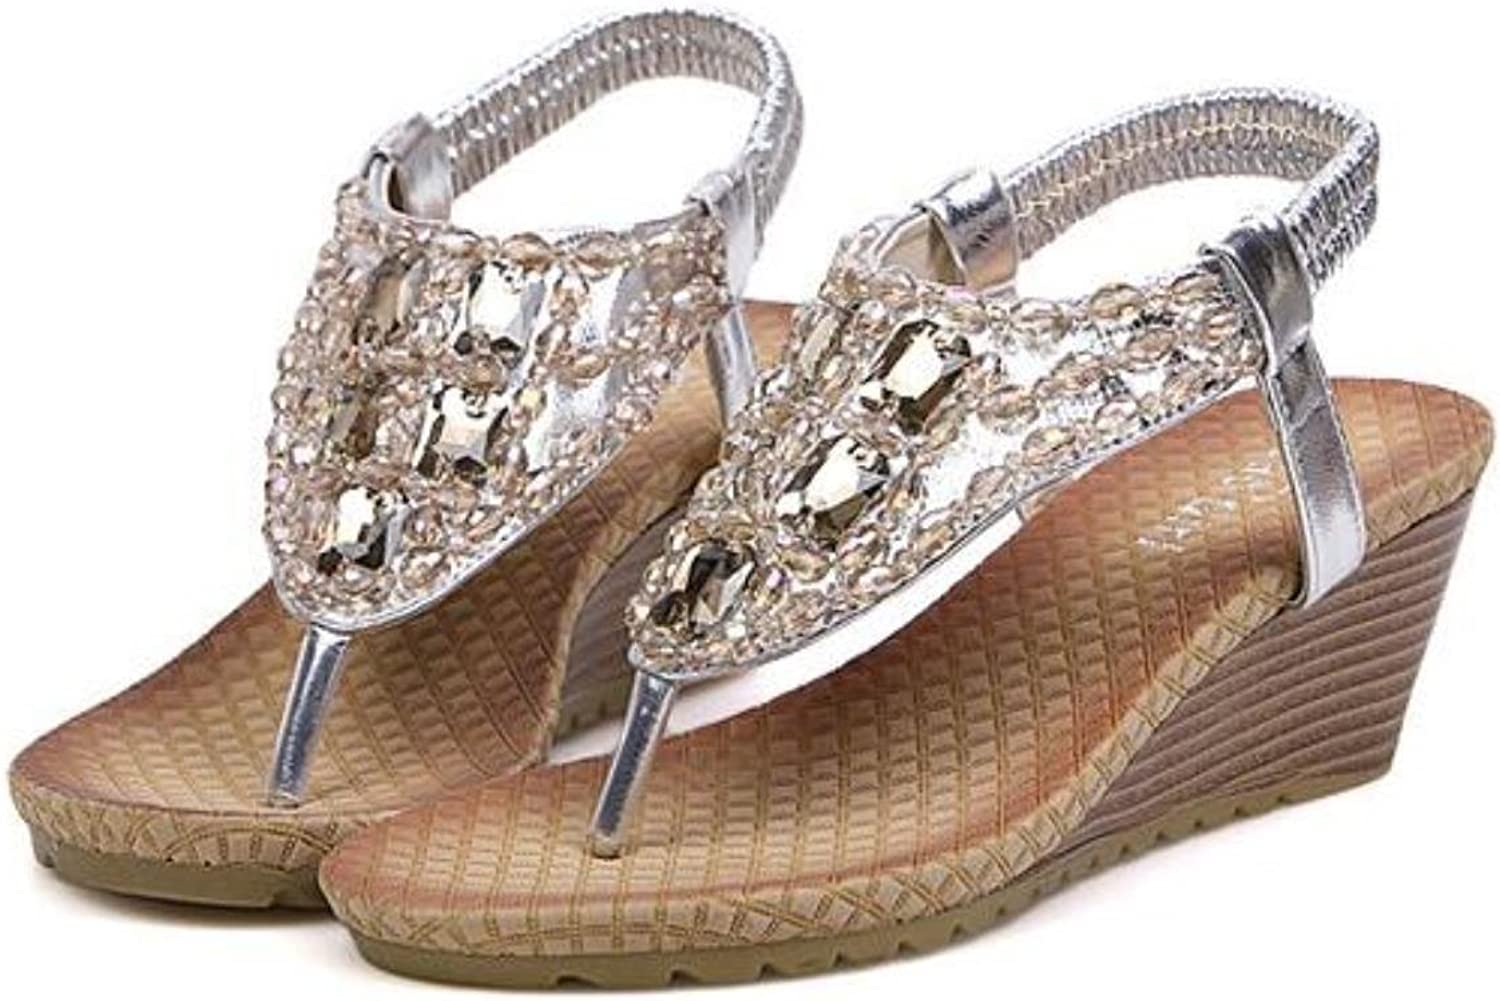 Women shoes High heels platform Sandals Rhinestone Summer sandals for women Fashion Cool gold Silver C248